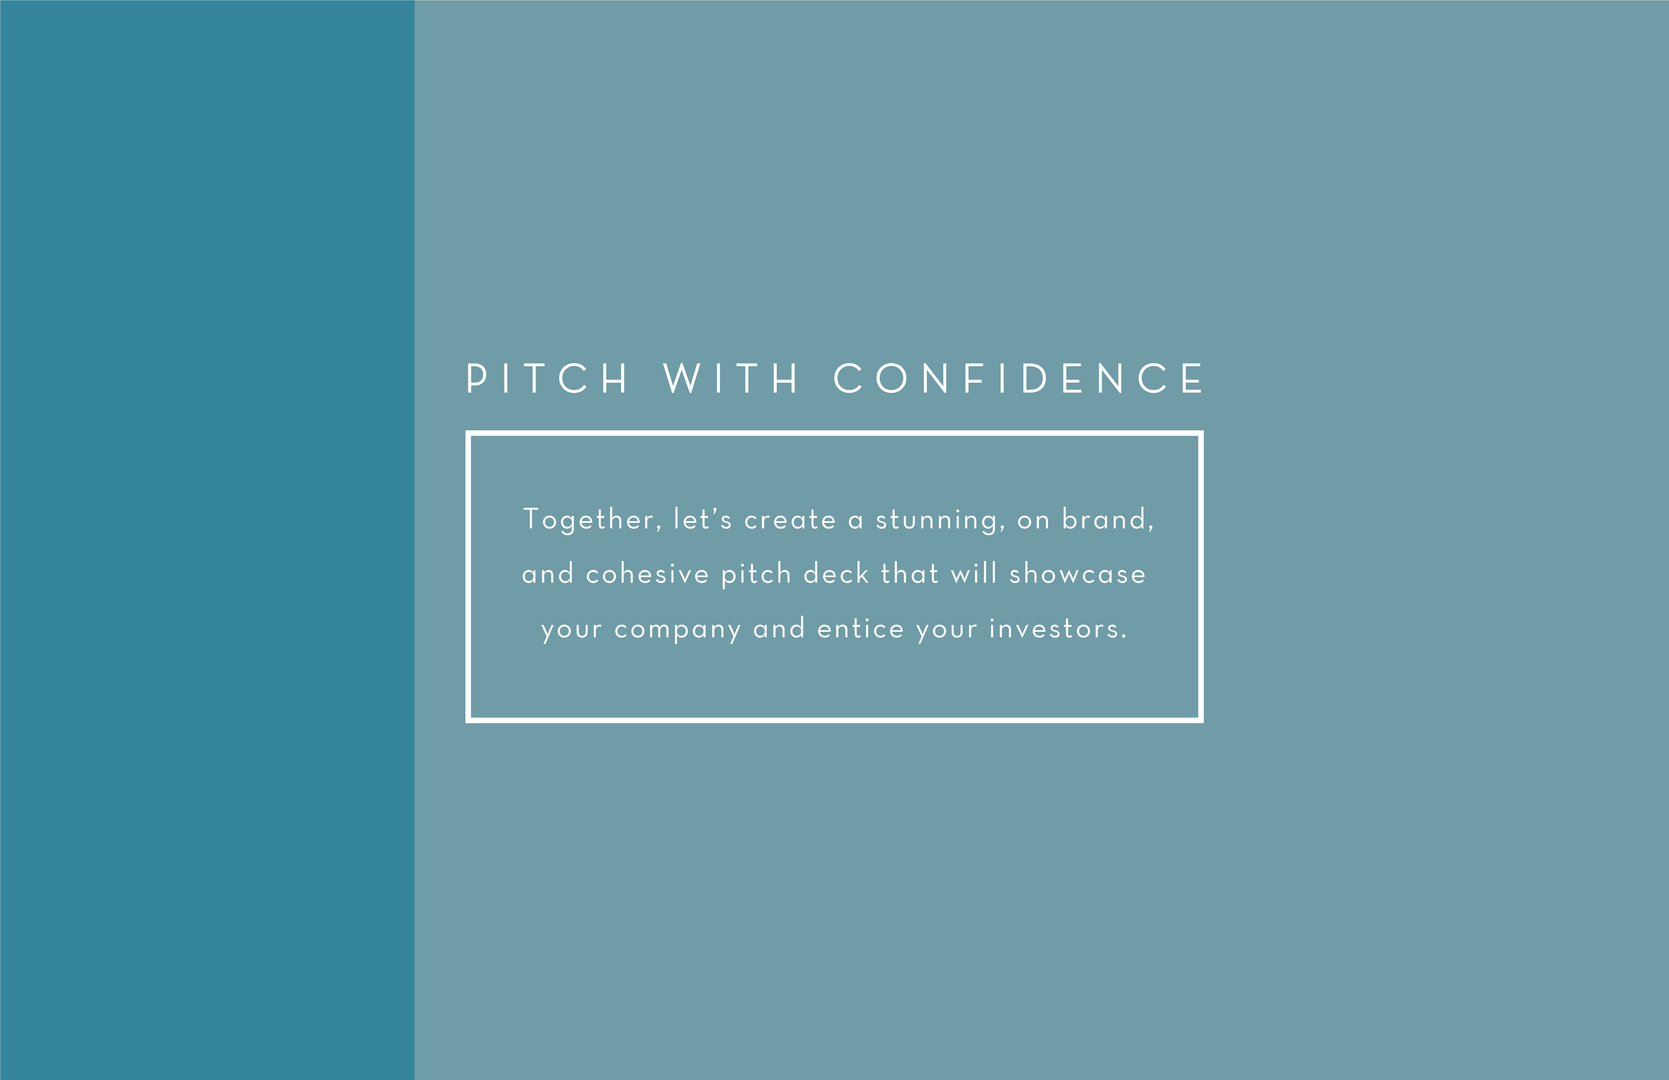 Pitch With Confidence